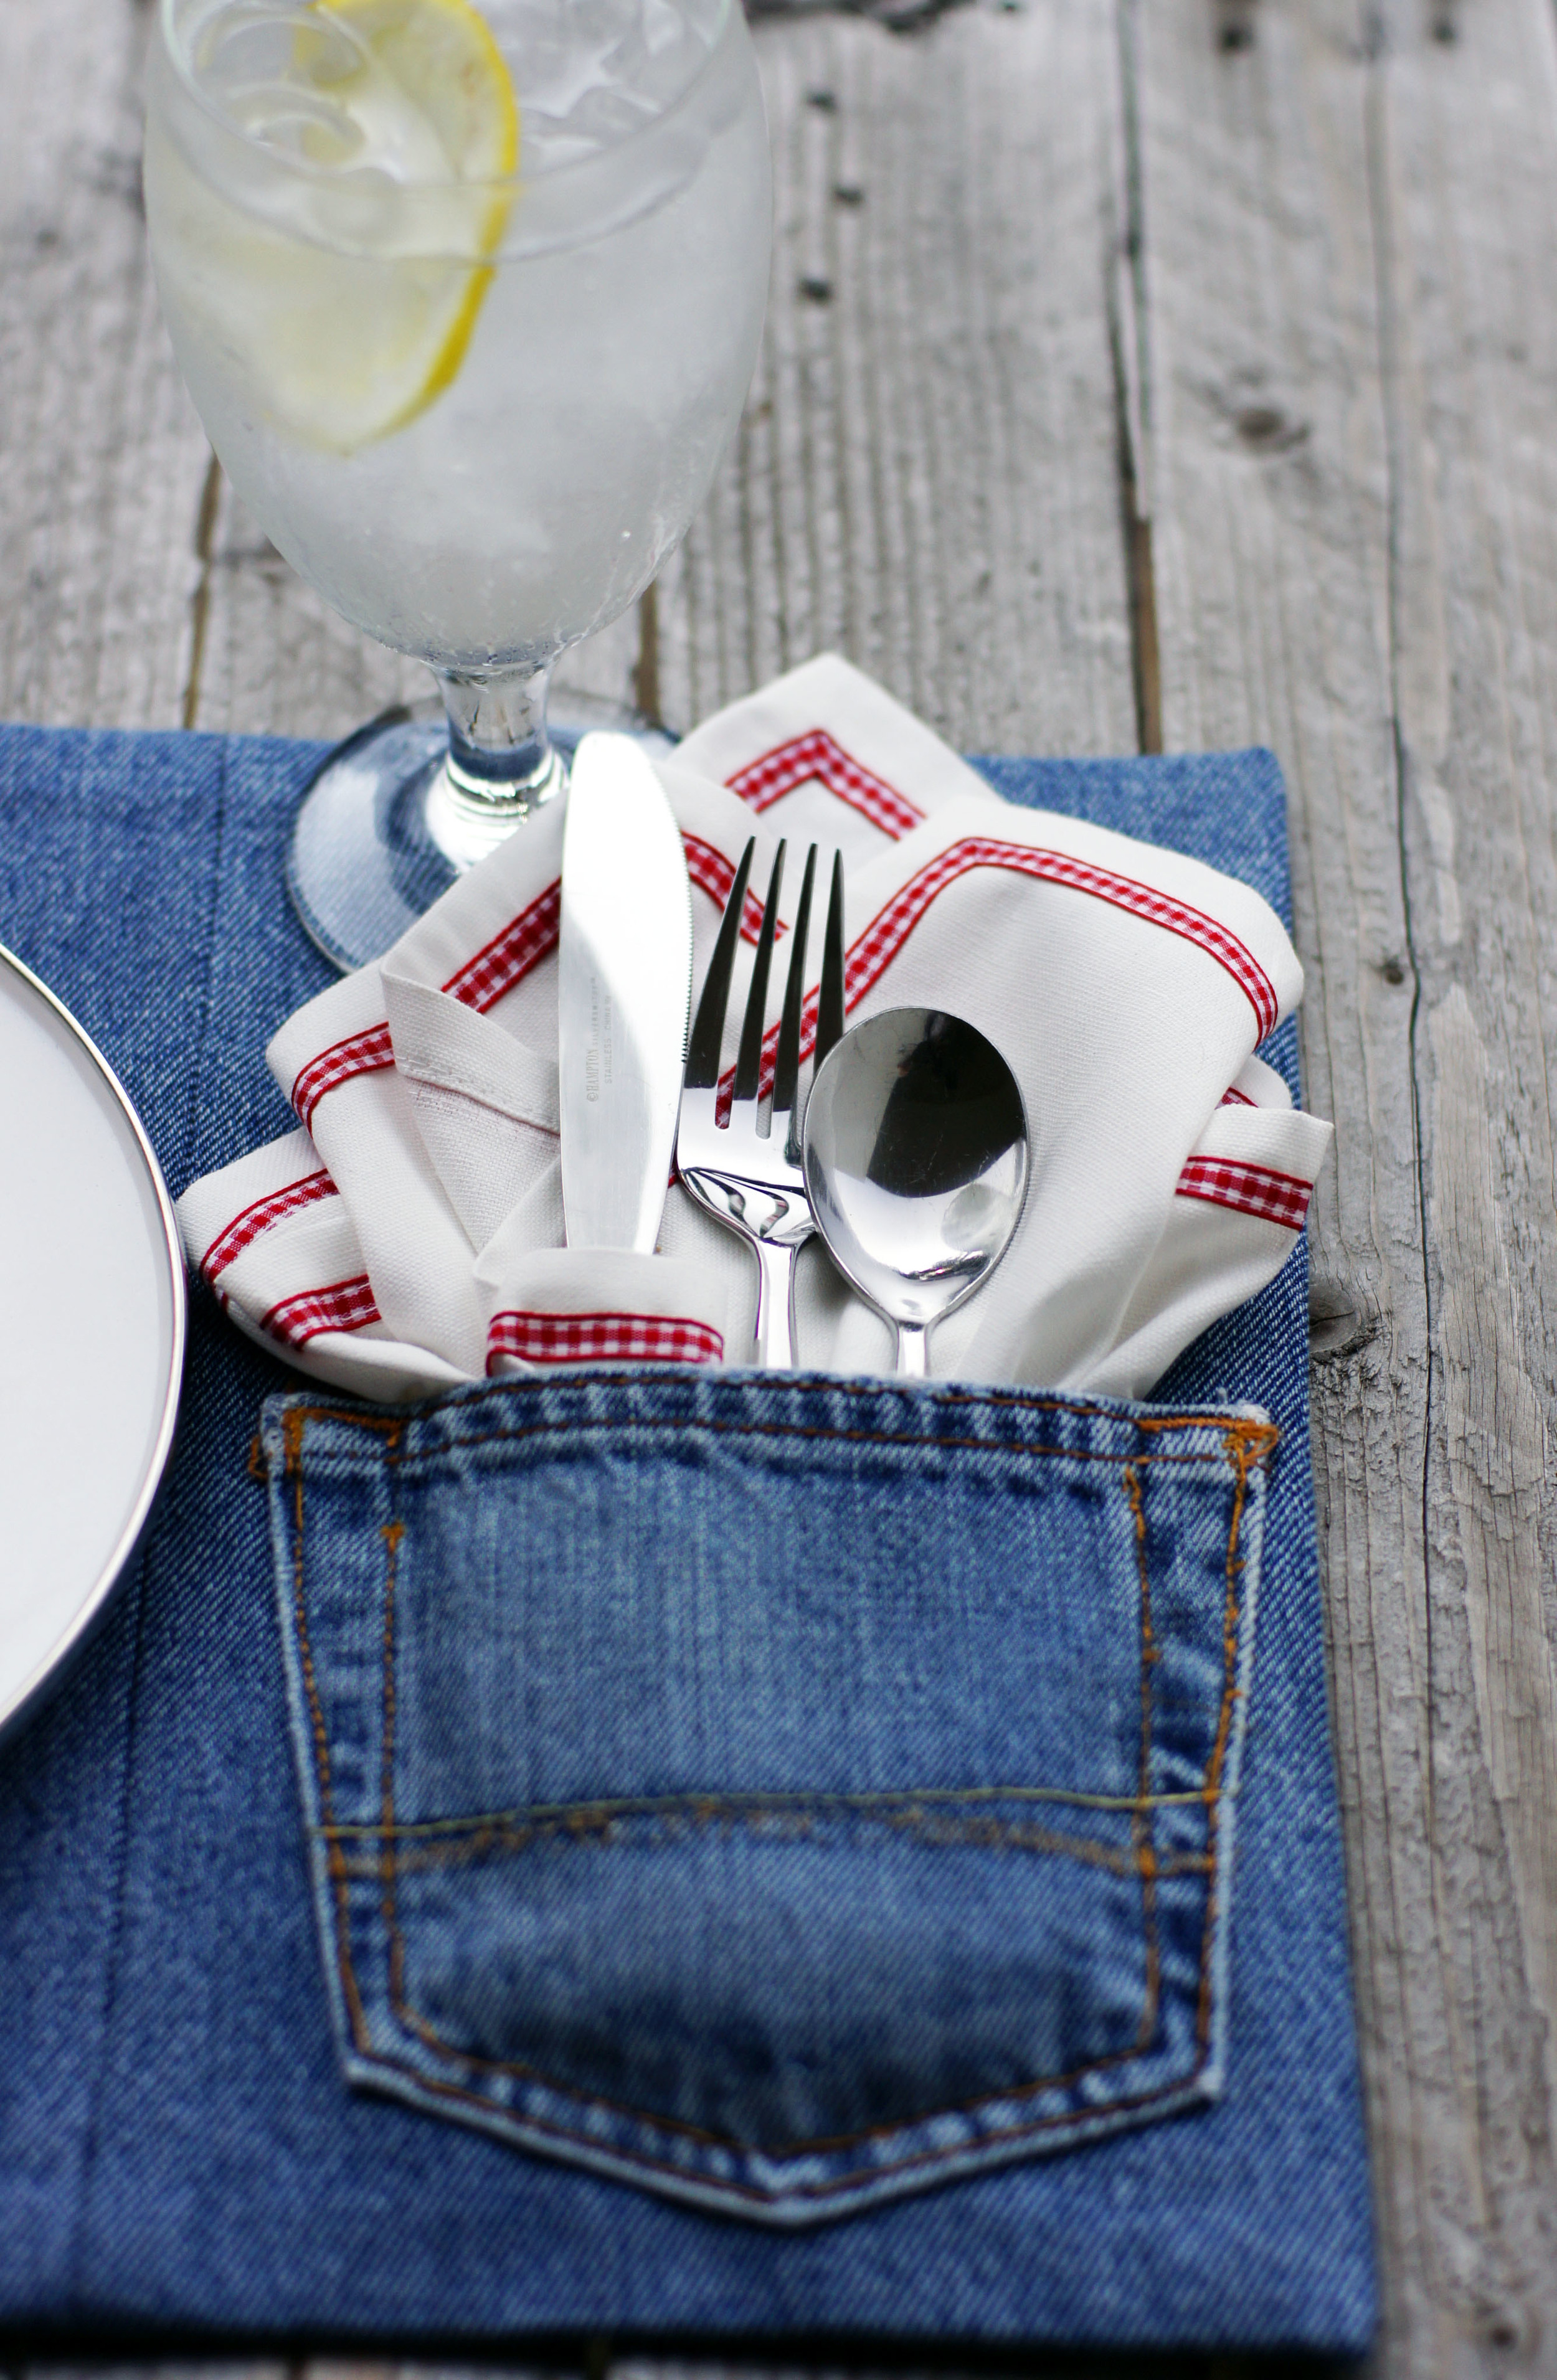 Upcycled Denim Placemats by Sam Henderson of Today's Nest.